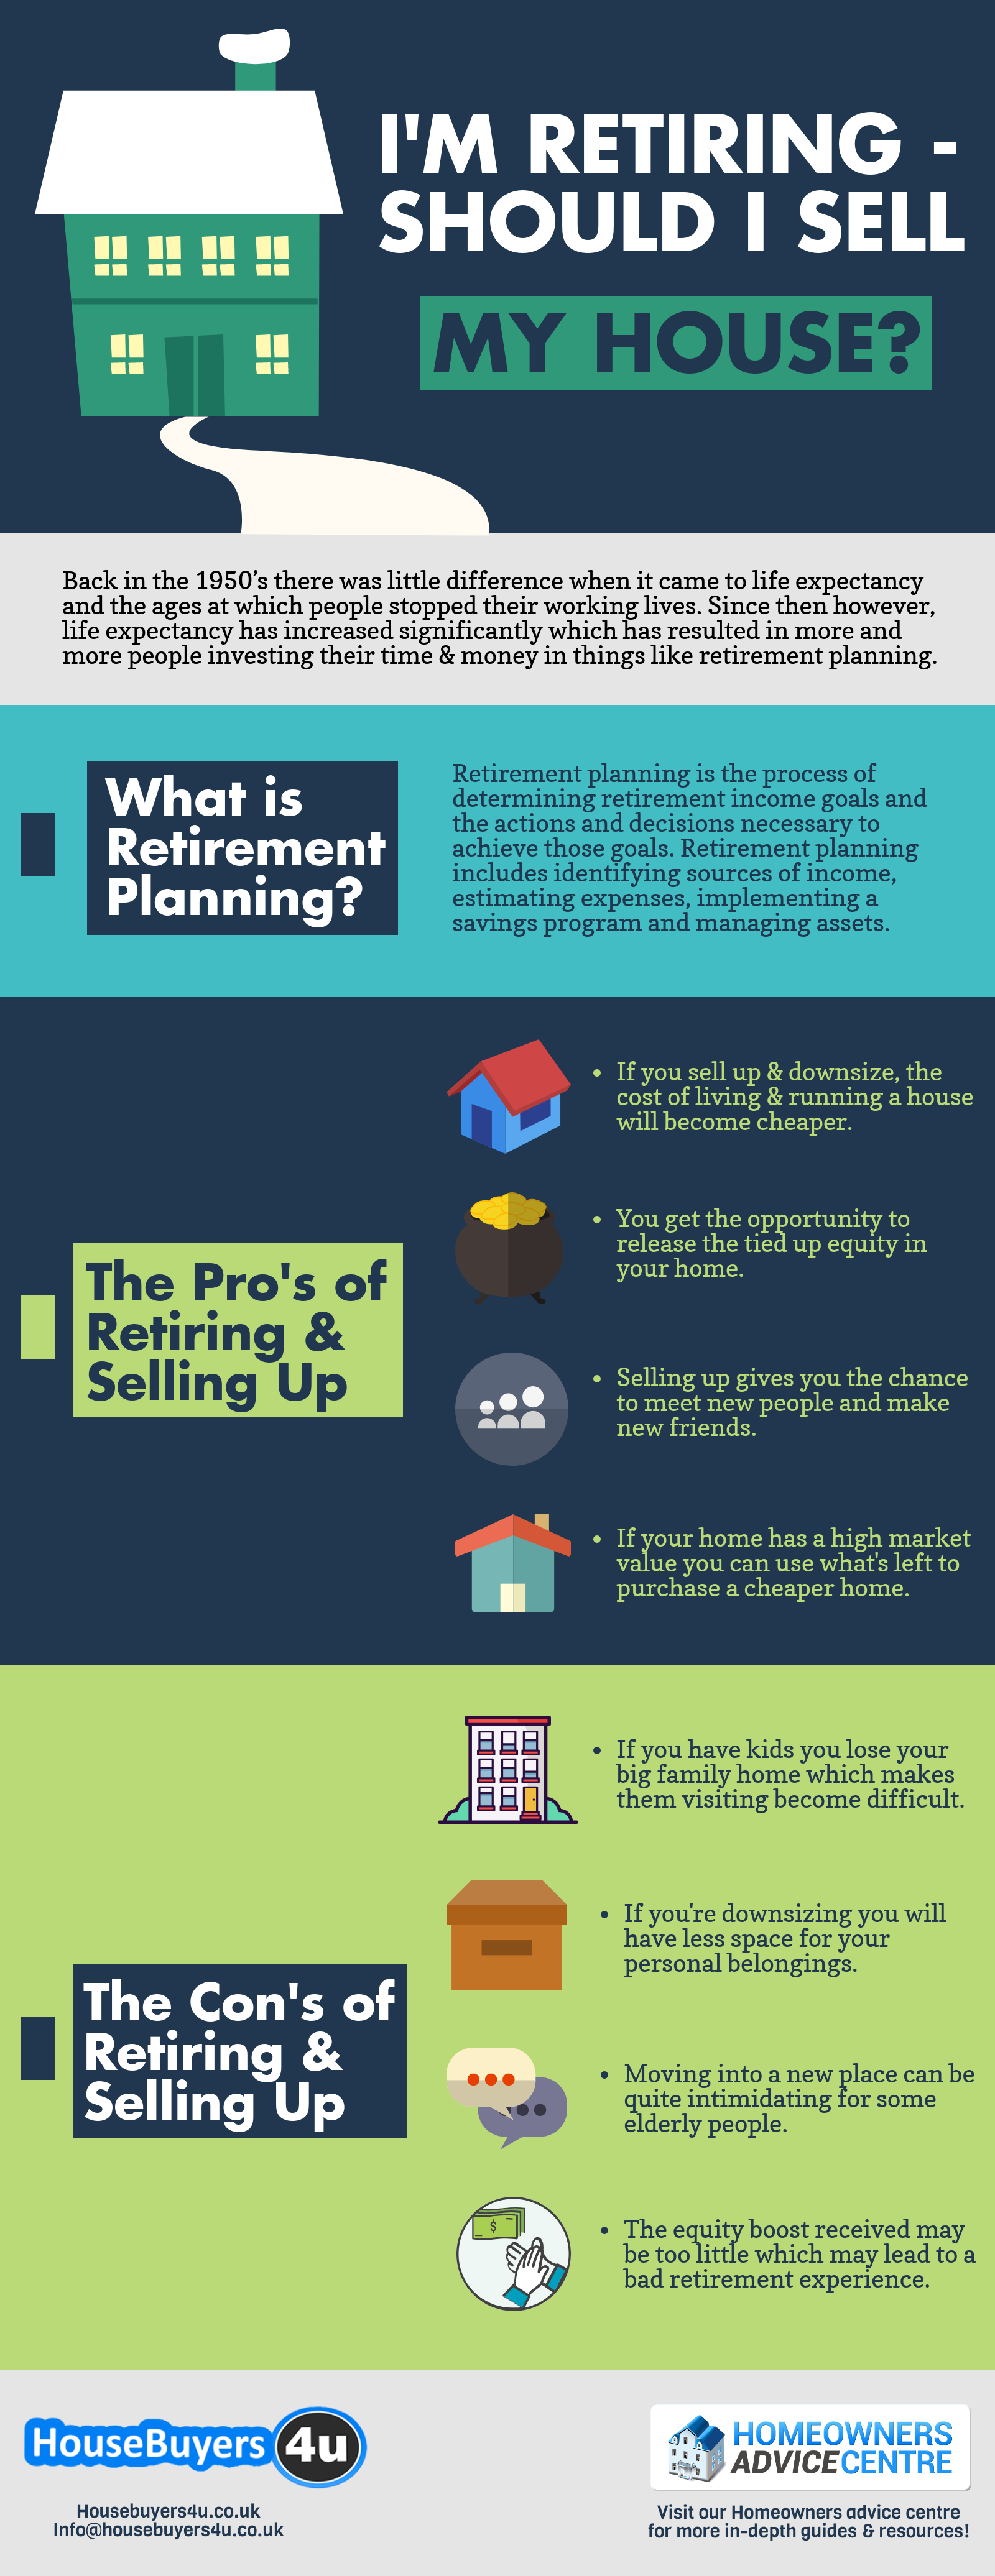 i'm retiring should i sell my house infographic